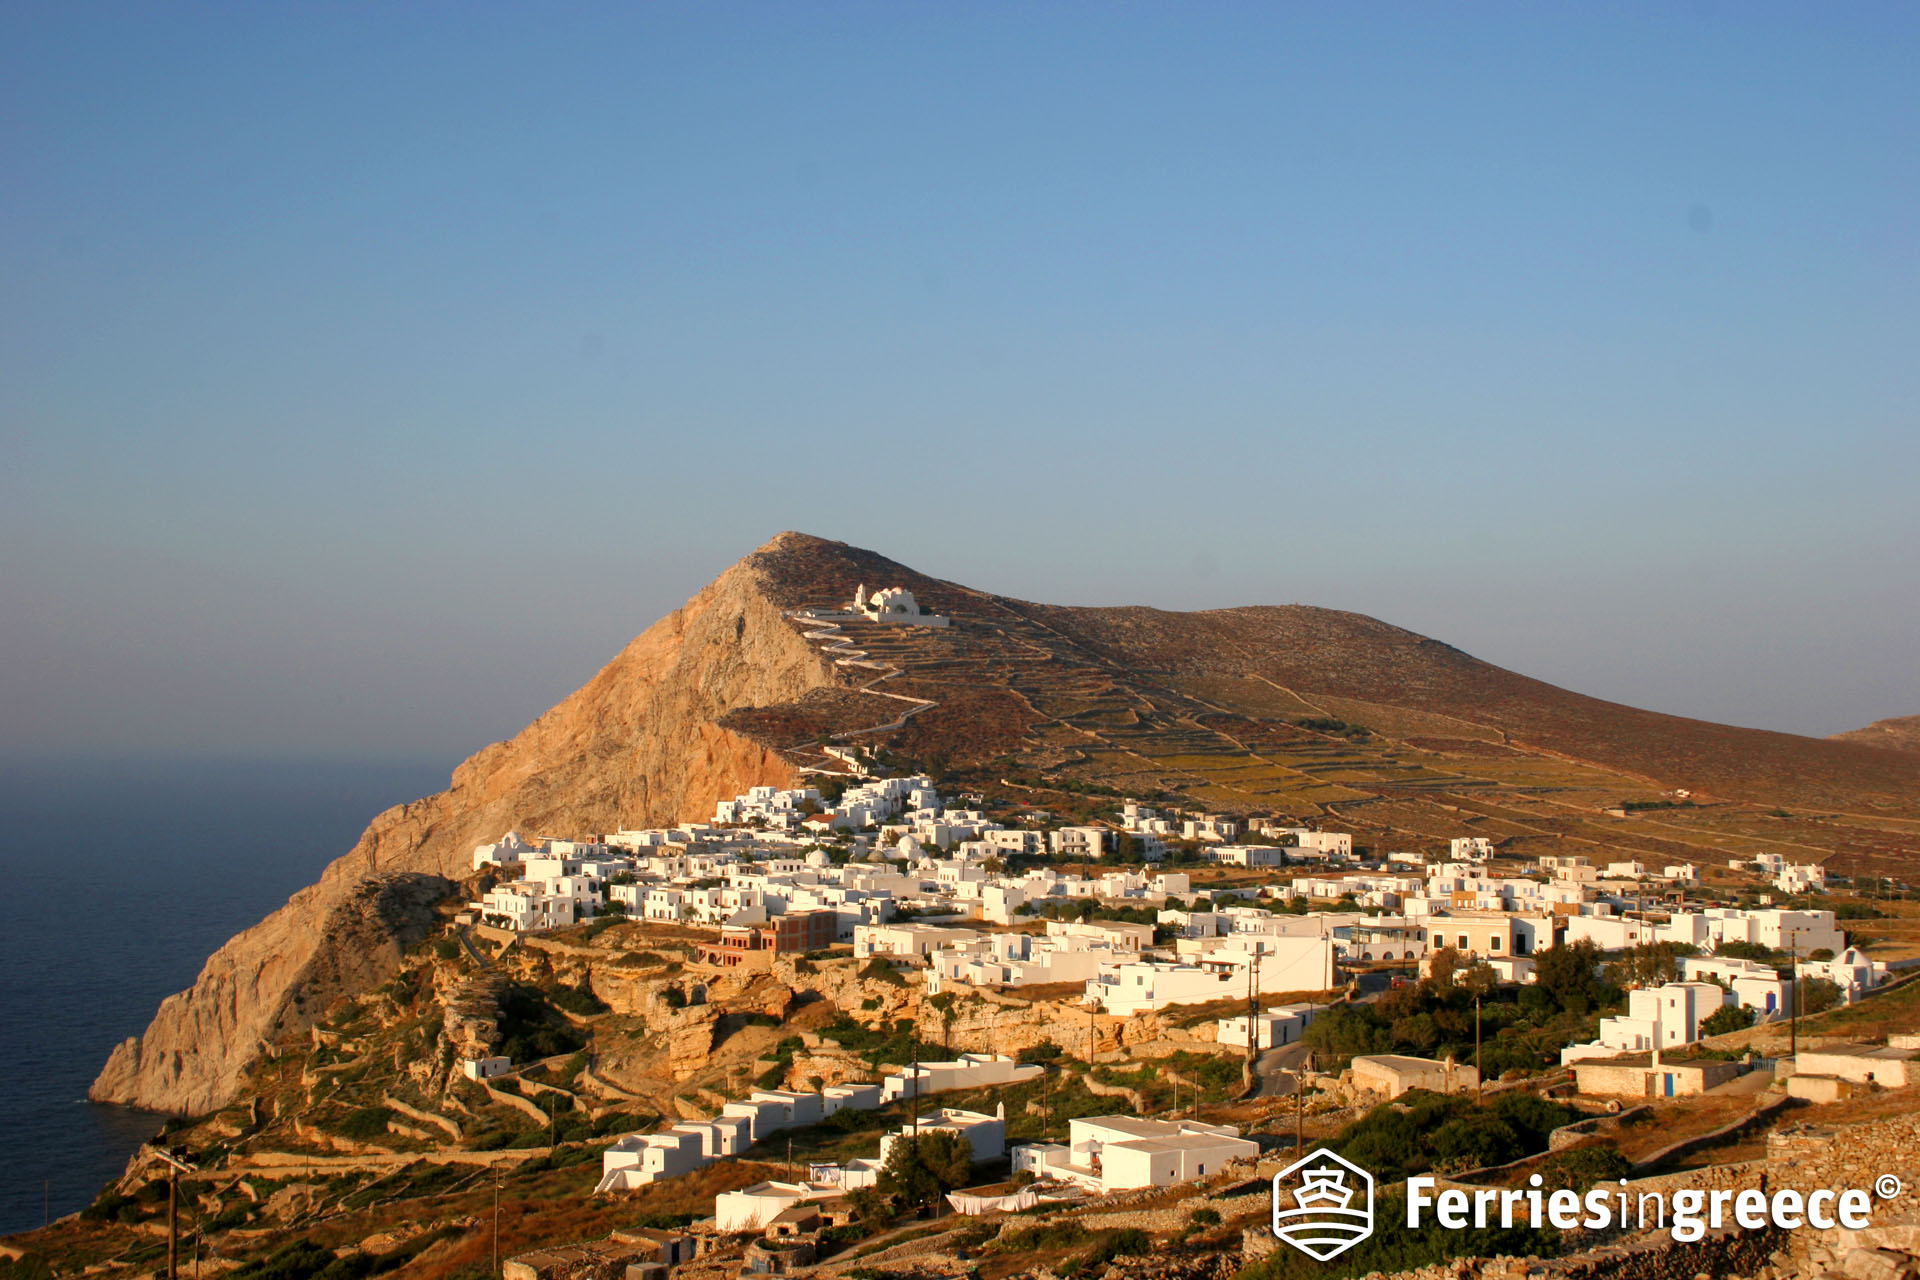 Island hopping from Santorini to Folegandros